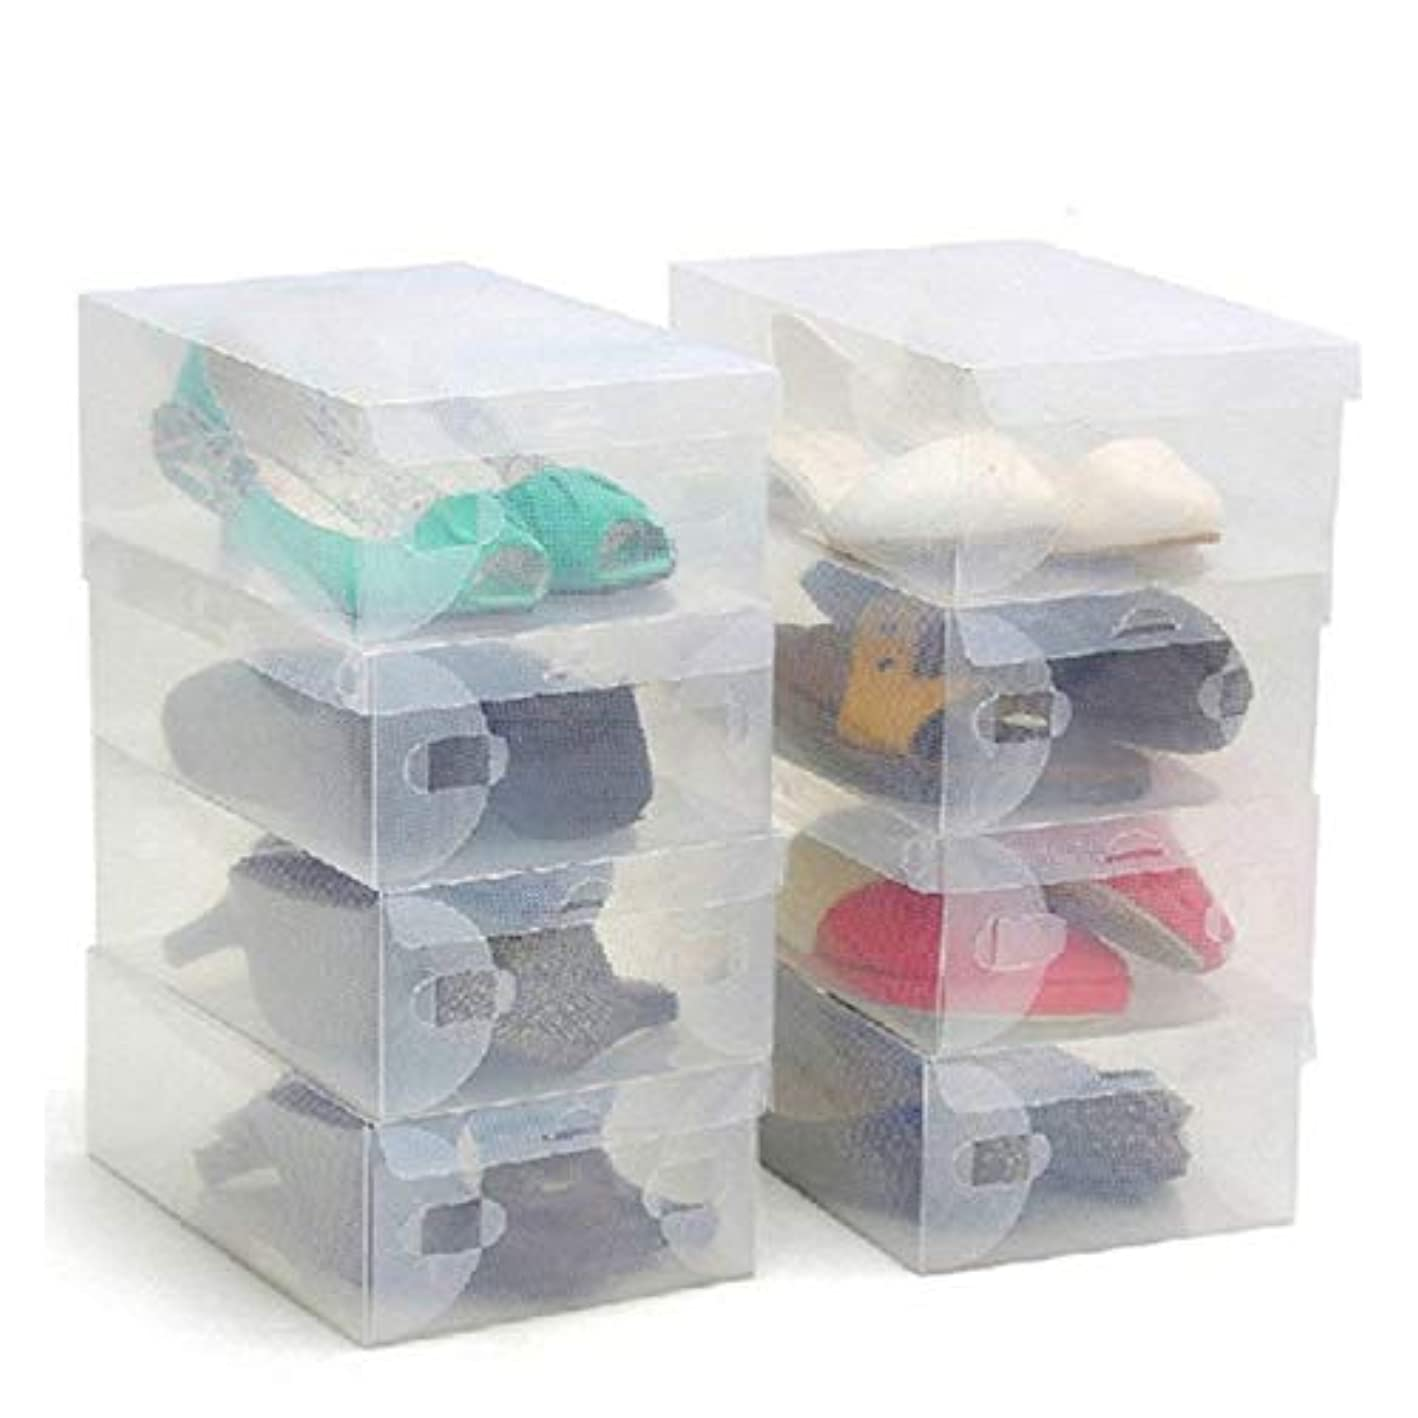 Kurtzy Shoe Storage Box 10 Pack - Clear Corrugated Plastic Shoe Boxes - Large Collapsible Stackable Foldable Boxes - Waterproof Shoe Organizer Can Fit Small, Large and Medium Shoes - Ideal for Travel